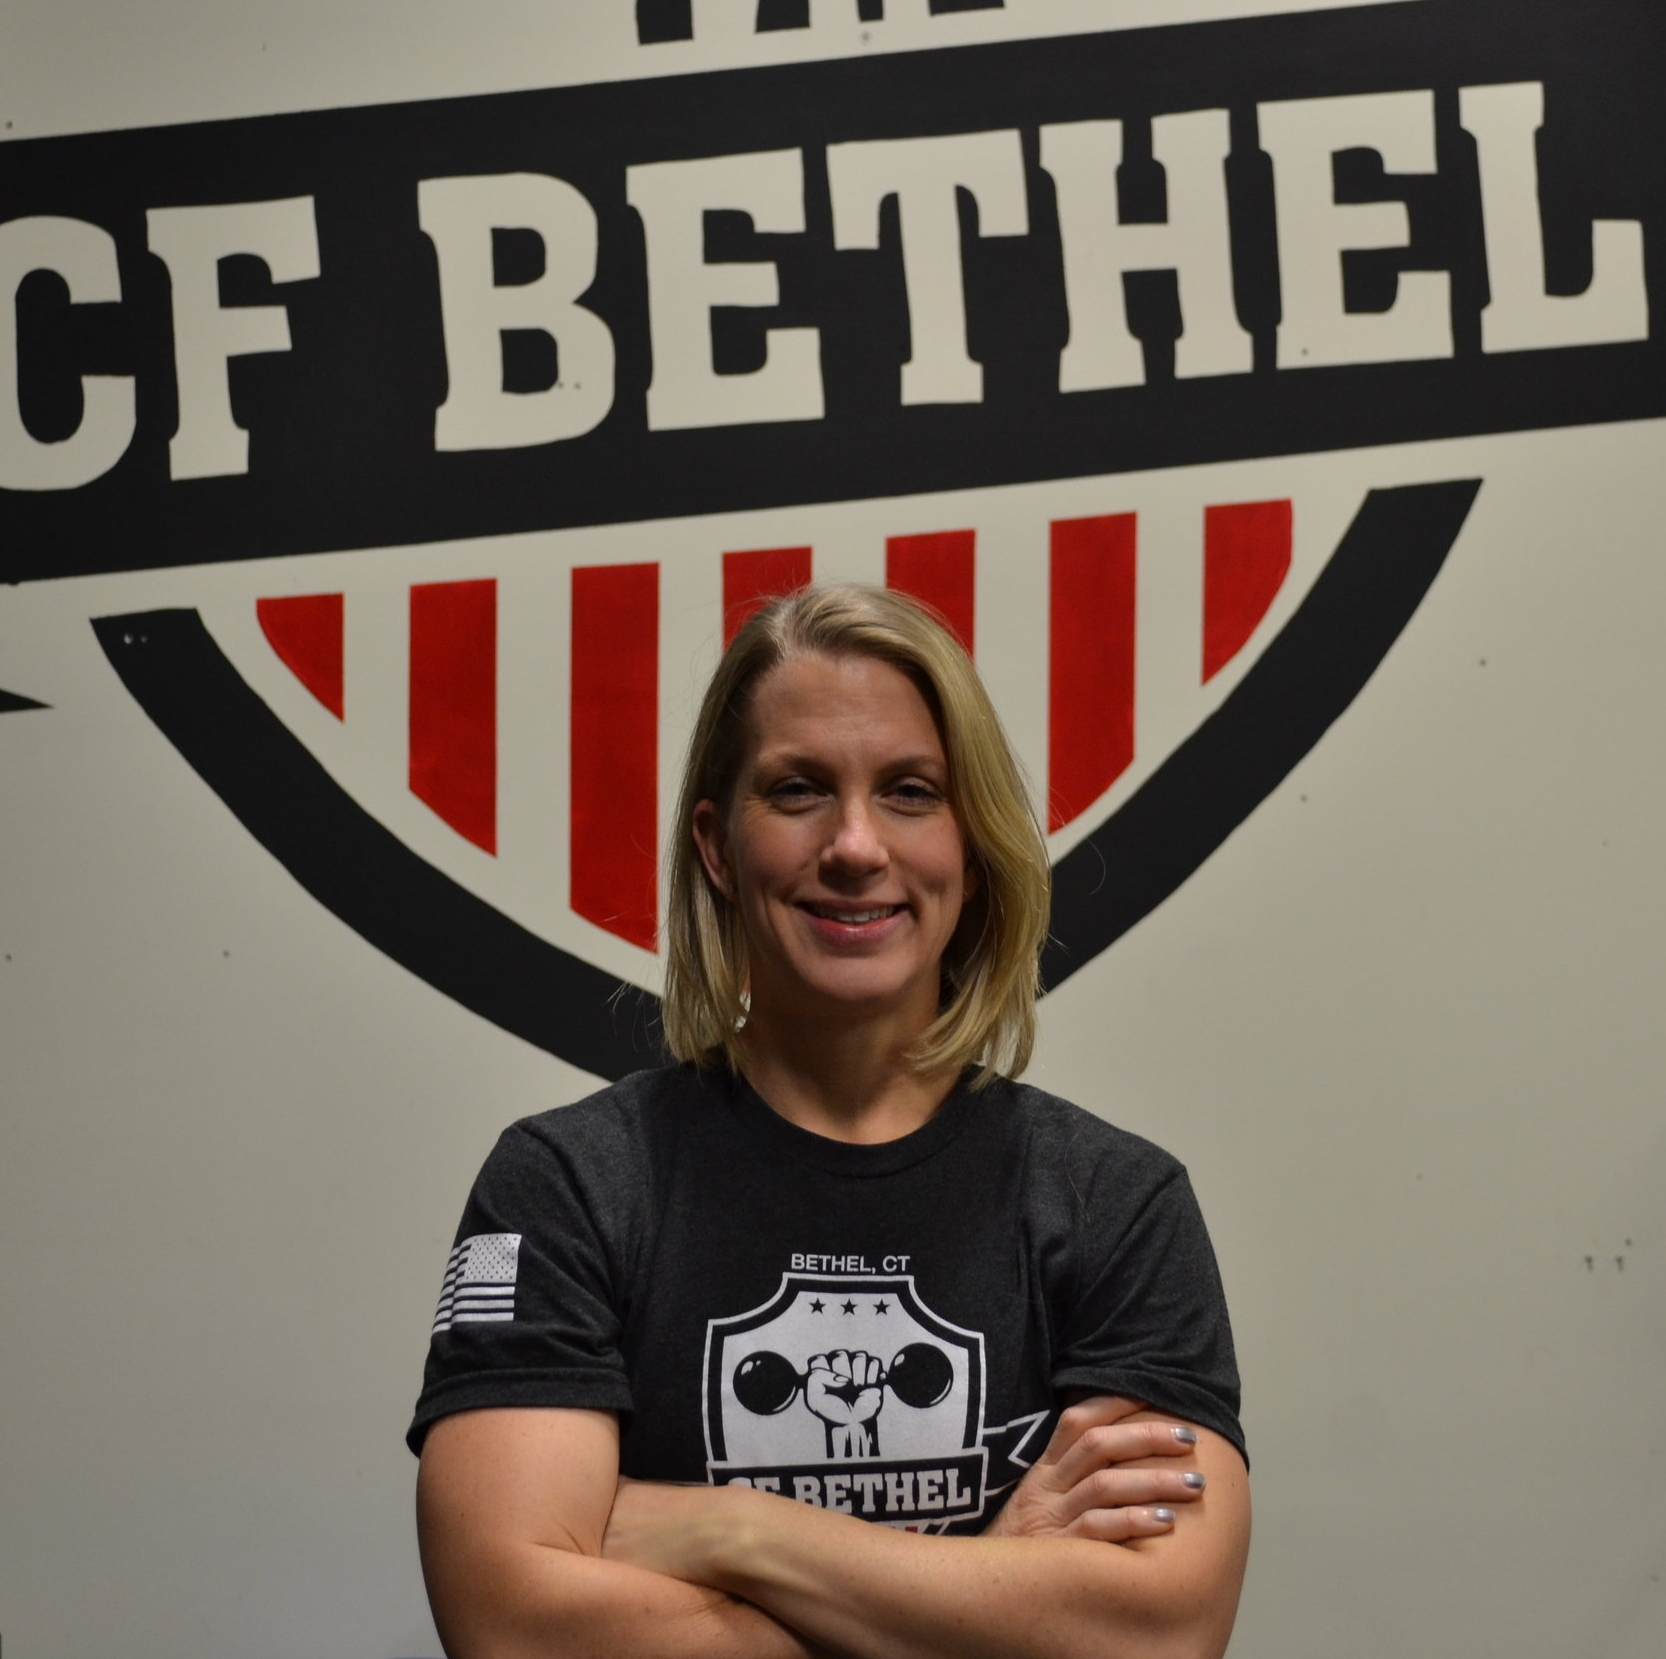 Nicole   Coach since 2017  Credentials: CFL1, CrossFit Gymnastics, CPR & First Aid, & BFA Illustration  NICOLE ENJOYS...  Watching everyone learn new skills (especially the masters athletes) and cheering everyone on!  Outside of work, I enjoy: Working out early in the morning, being a mom, reading, cooking, & painting/drawing/printmaking.  SHE IS YOUR GO-TO FOR:  Personal Training  Encouragement!!  Gymnastics skills  Opening CFB really early in the morning